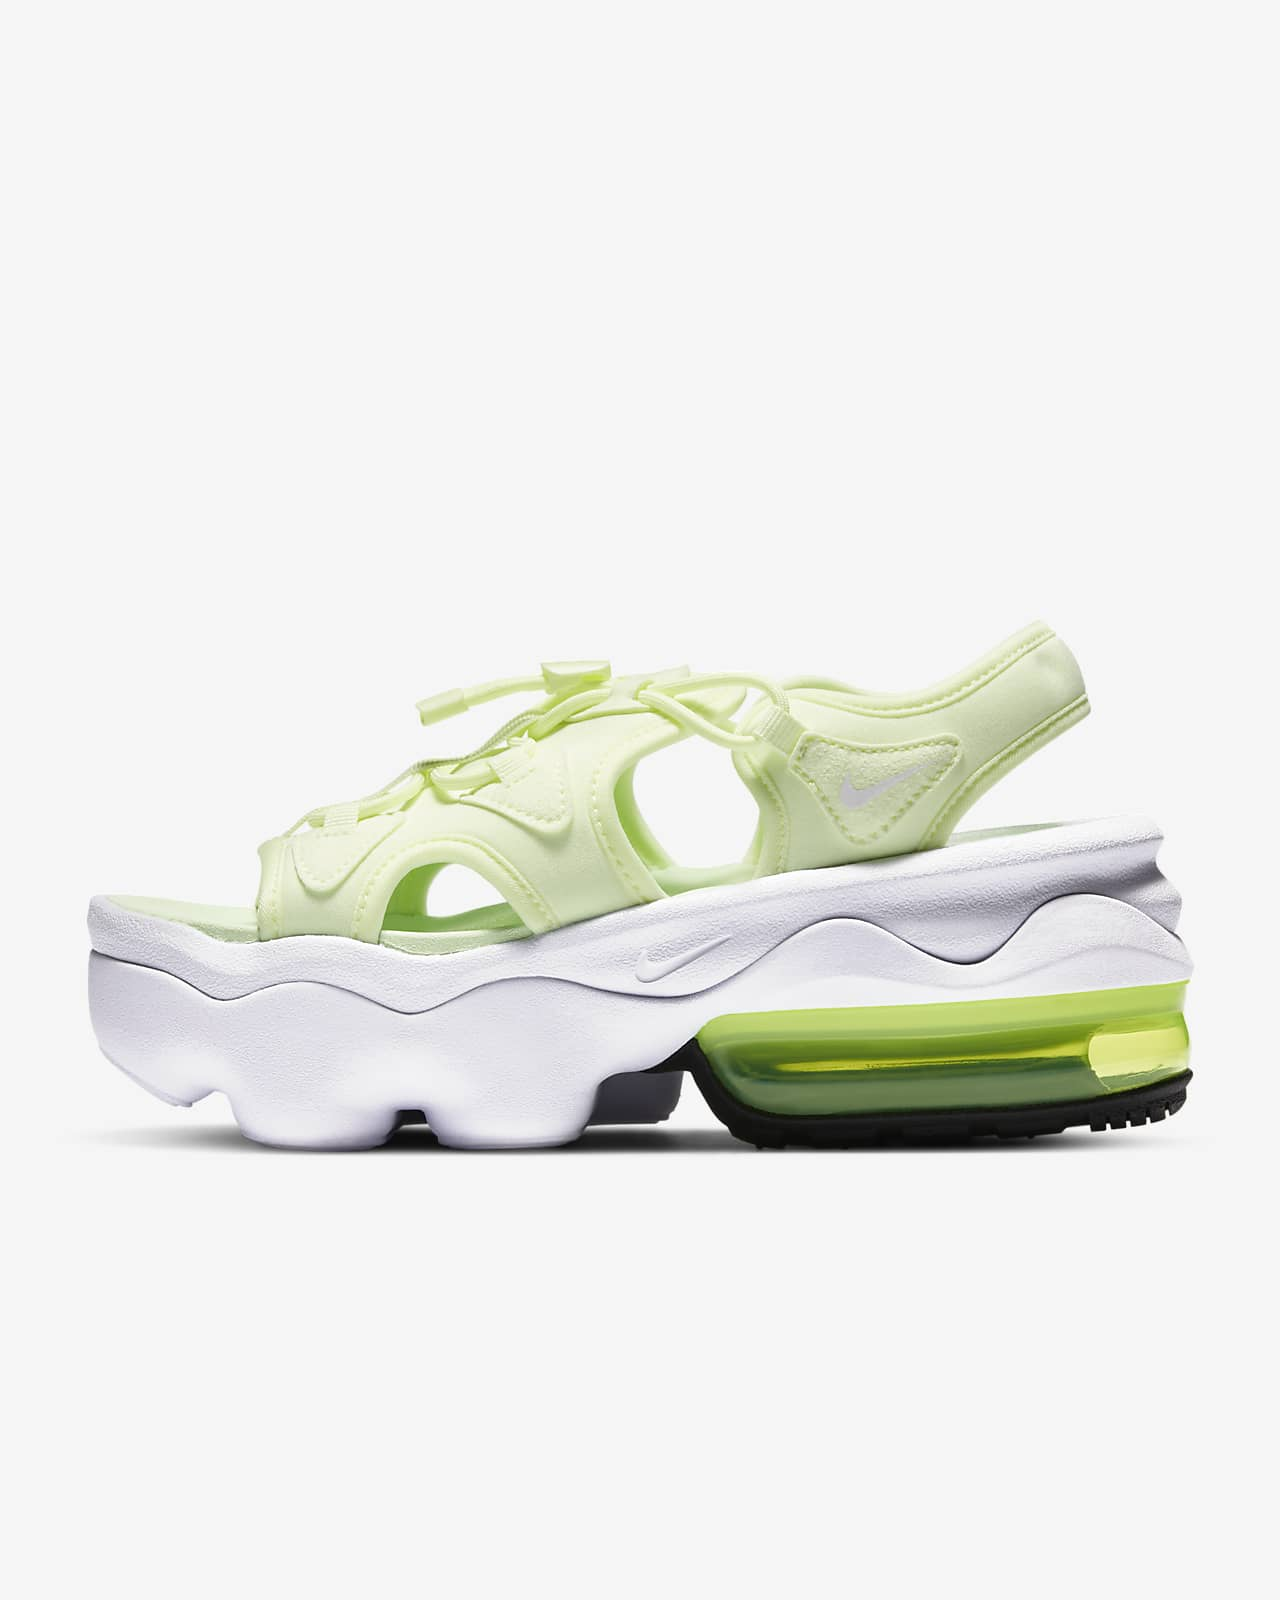 Nike Air Max Koko Women's Sandal